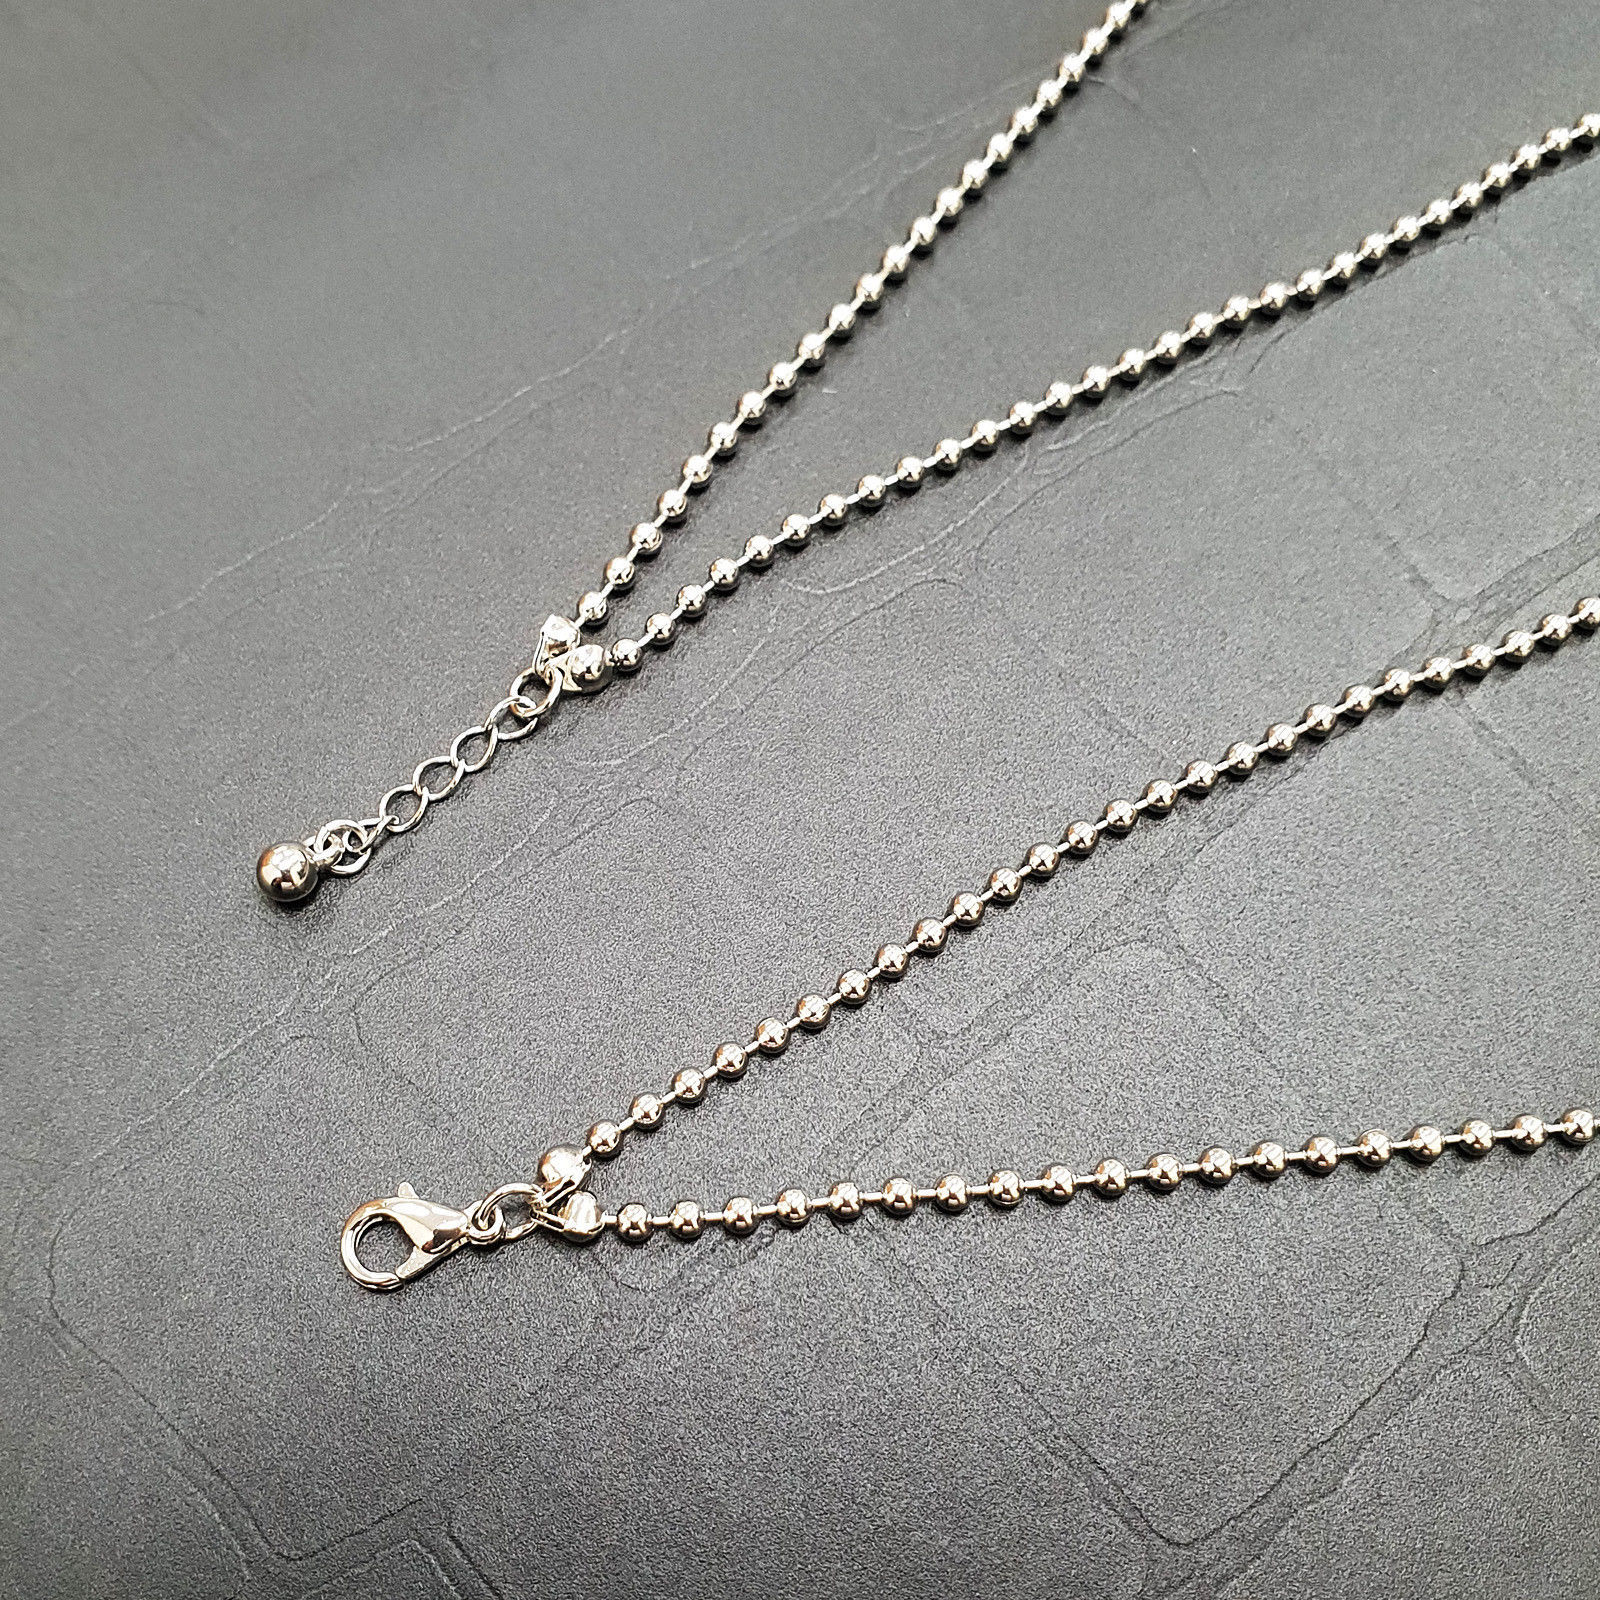 Multi-Strand Ball Chain Necklace Choker Layered Necklaces Imitation Pearl N15